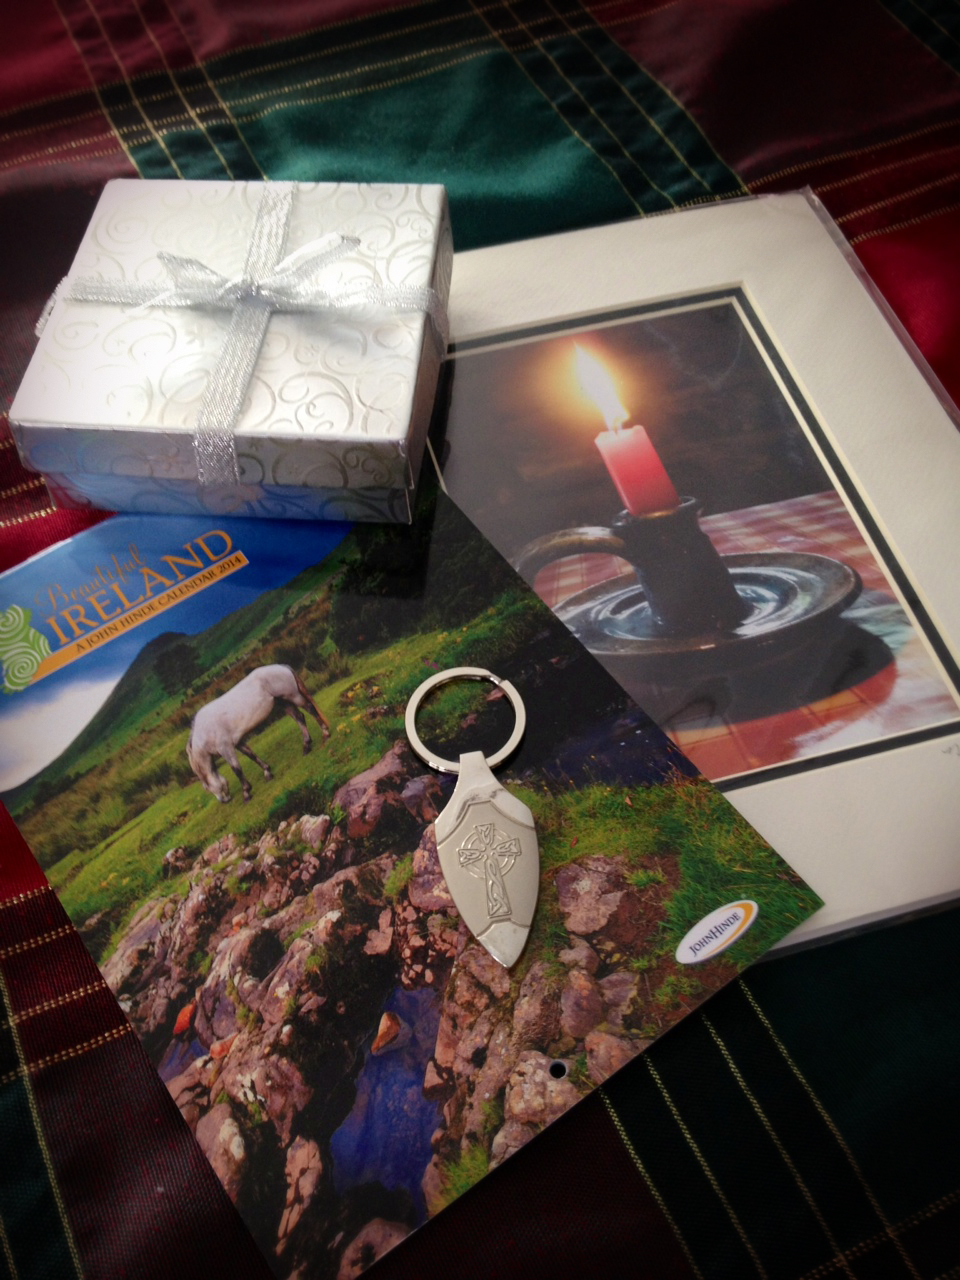 Kathy in Idaho treated me to a beautiful photo she took in Ireland, an Irish keychain, and a calendar. What  wonderful gifts. -- Annette in Michigan